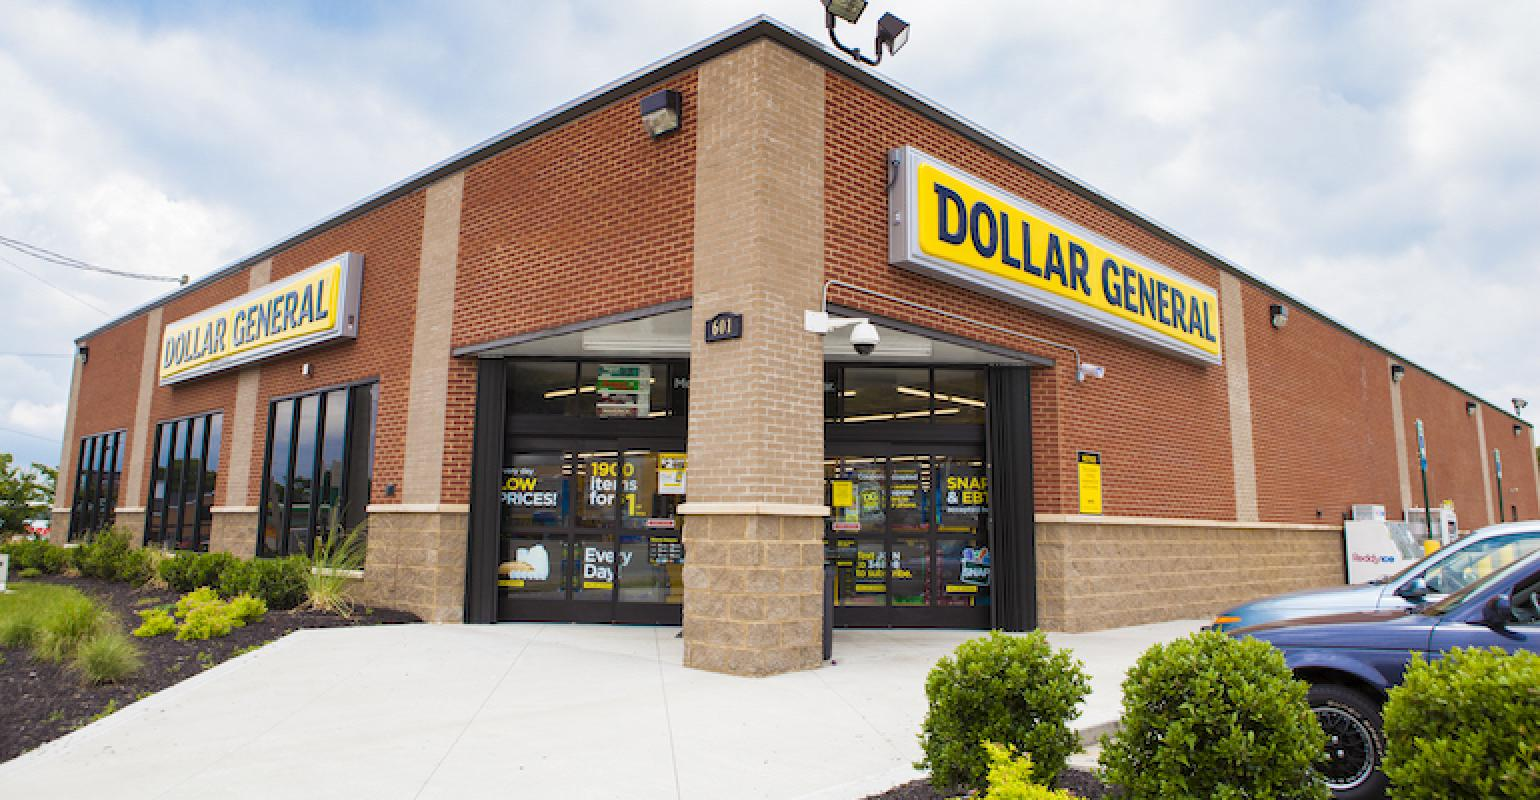 Dollar General, Dollar Tree stay on expansion track | Supermarket News